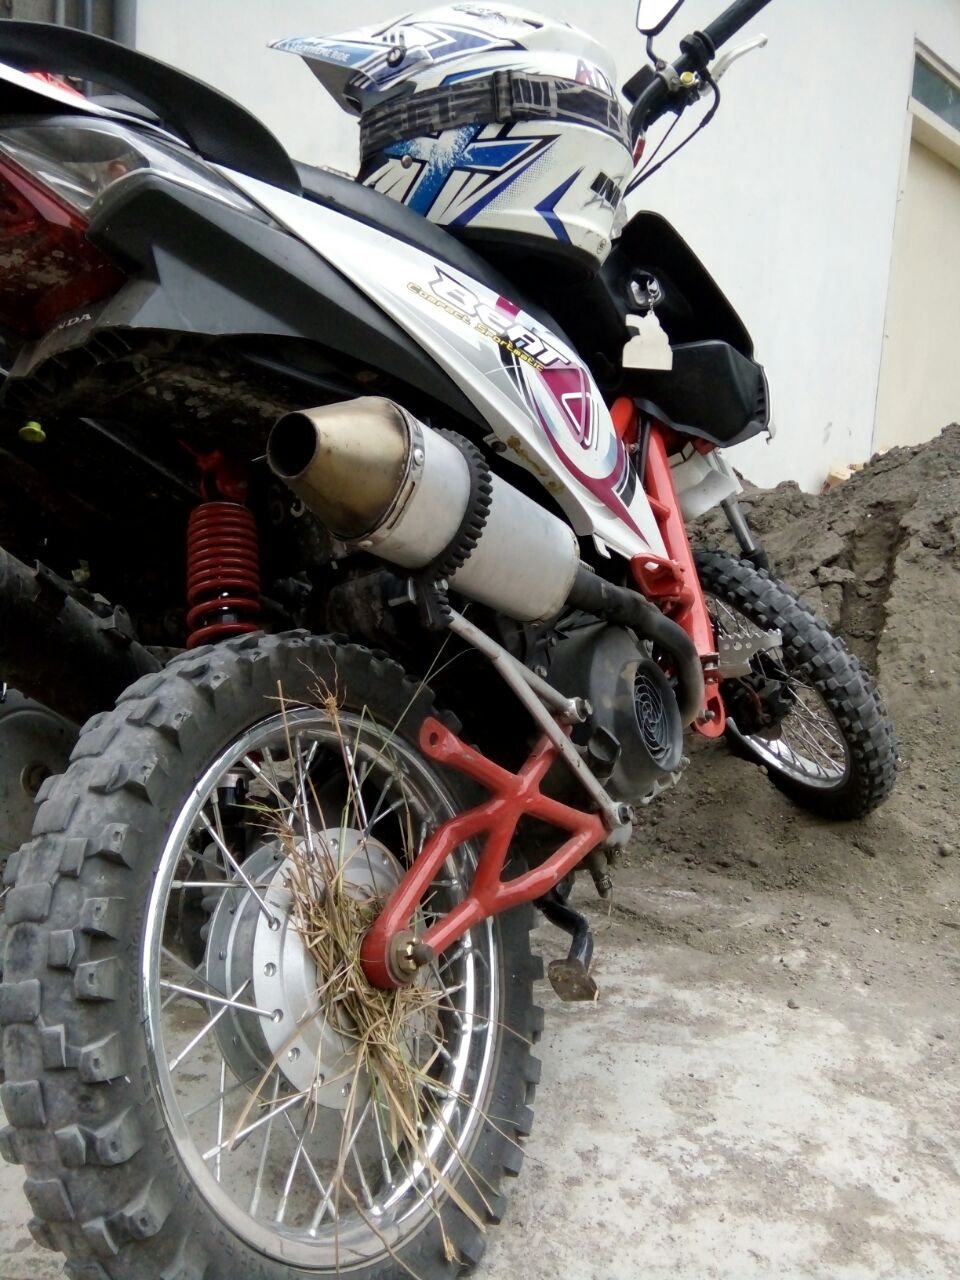 Modifikasi Motor Honda Beat Jadi Trail Kumpulan Modifikasi Motor